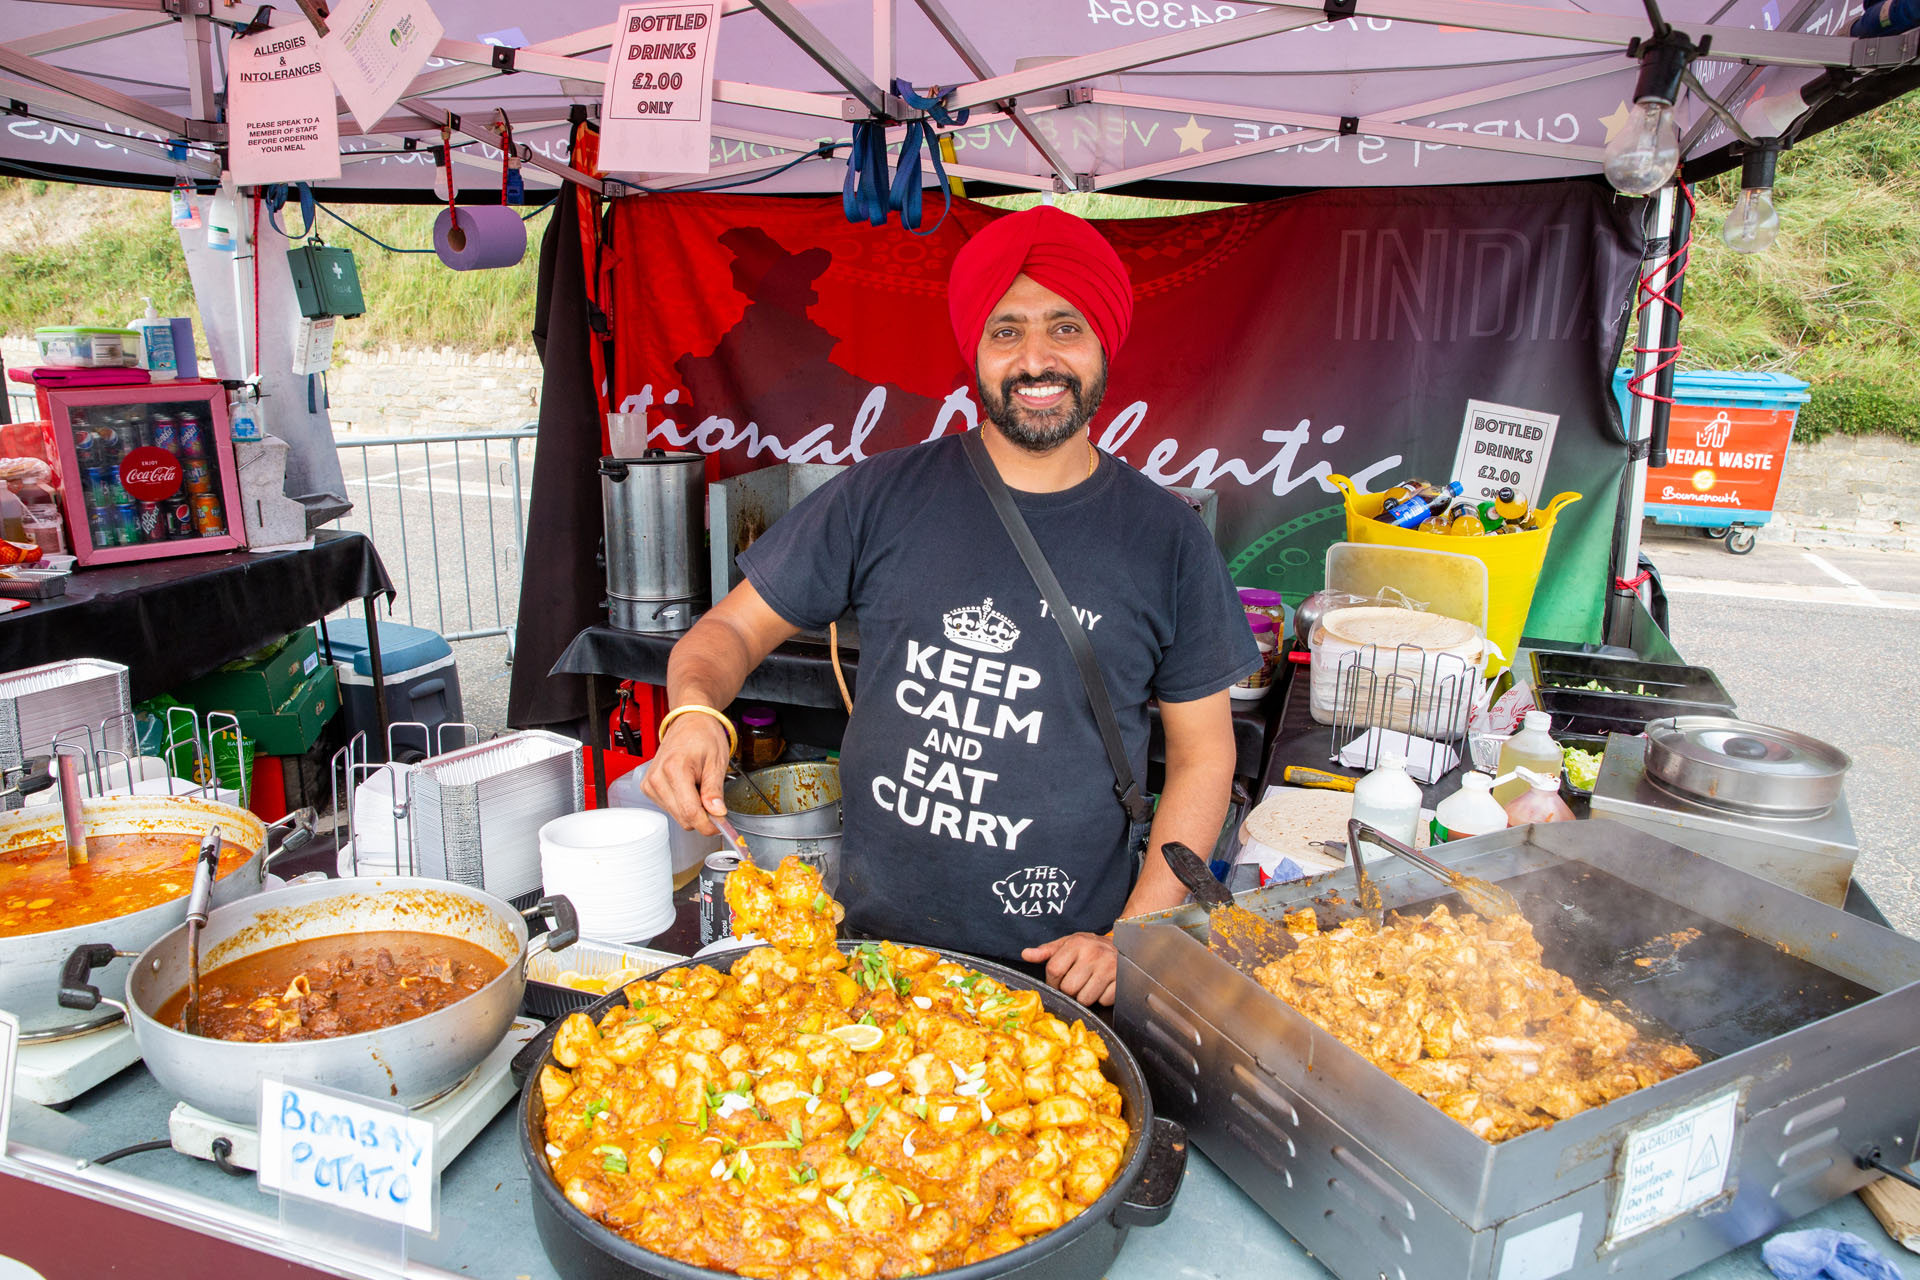 Vendor show casing his delicious and fresh array of Indian dishes to the camera